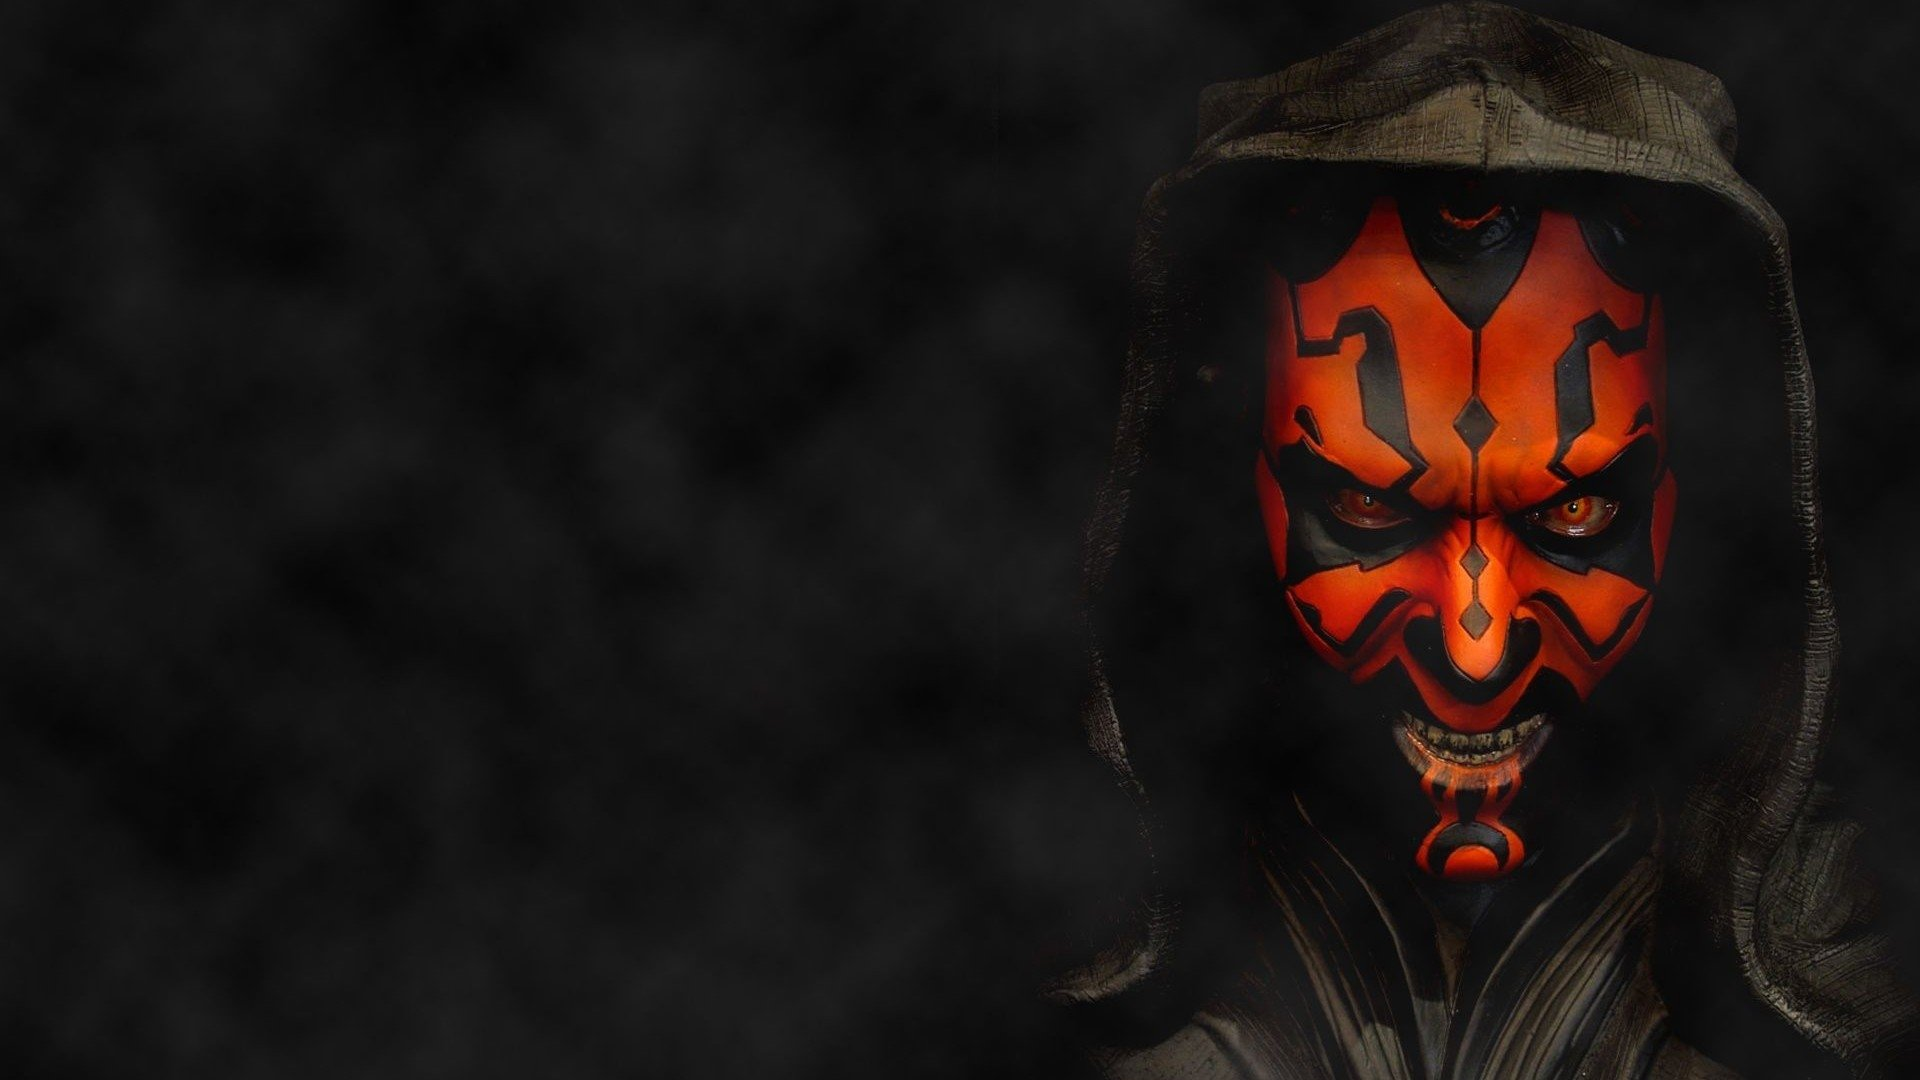 Movie - Star Wars Episode I: The Phantom Menace  Darth Maul Wallpaper